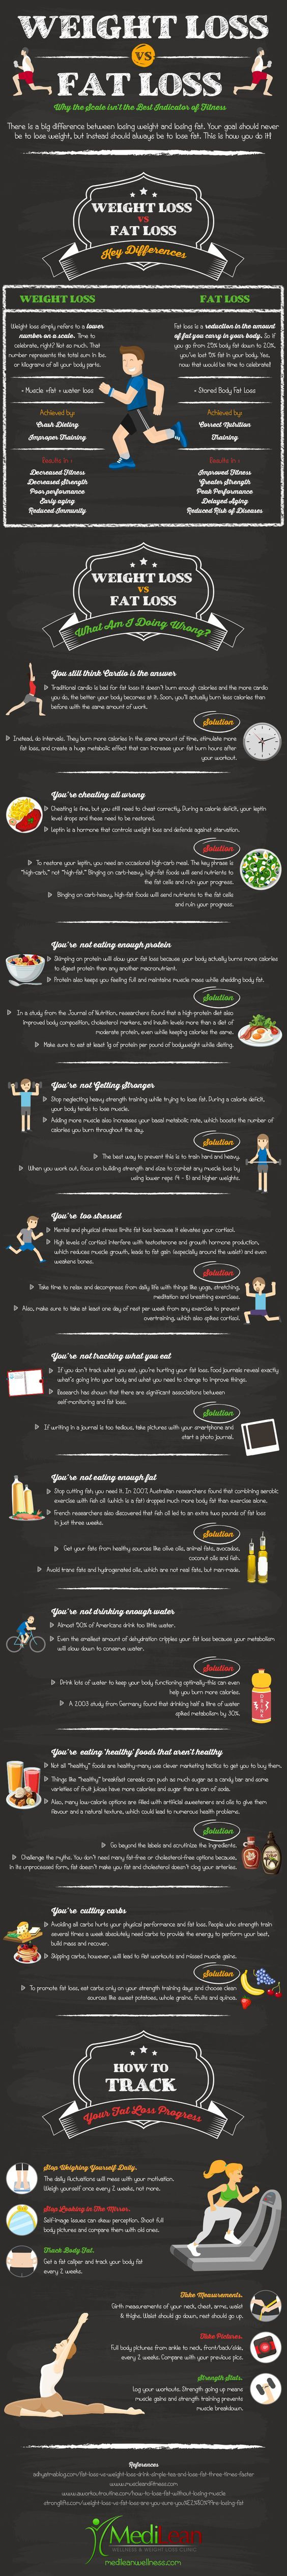 Weight Loss vs Fat Loss: Why Your Scale Isn't the Best Indicator of Fitness – Infographic: